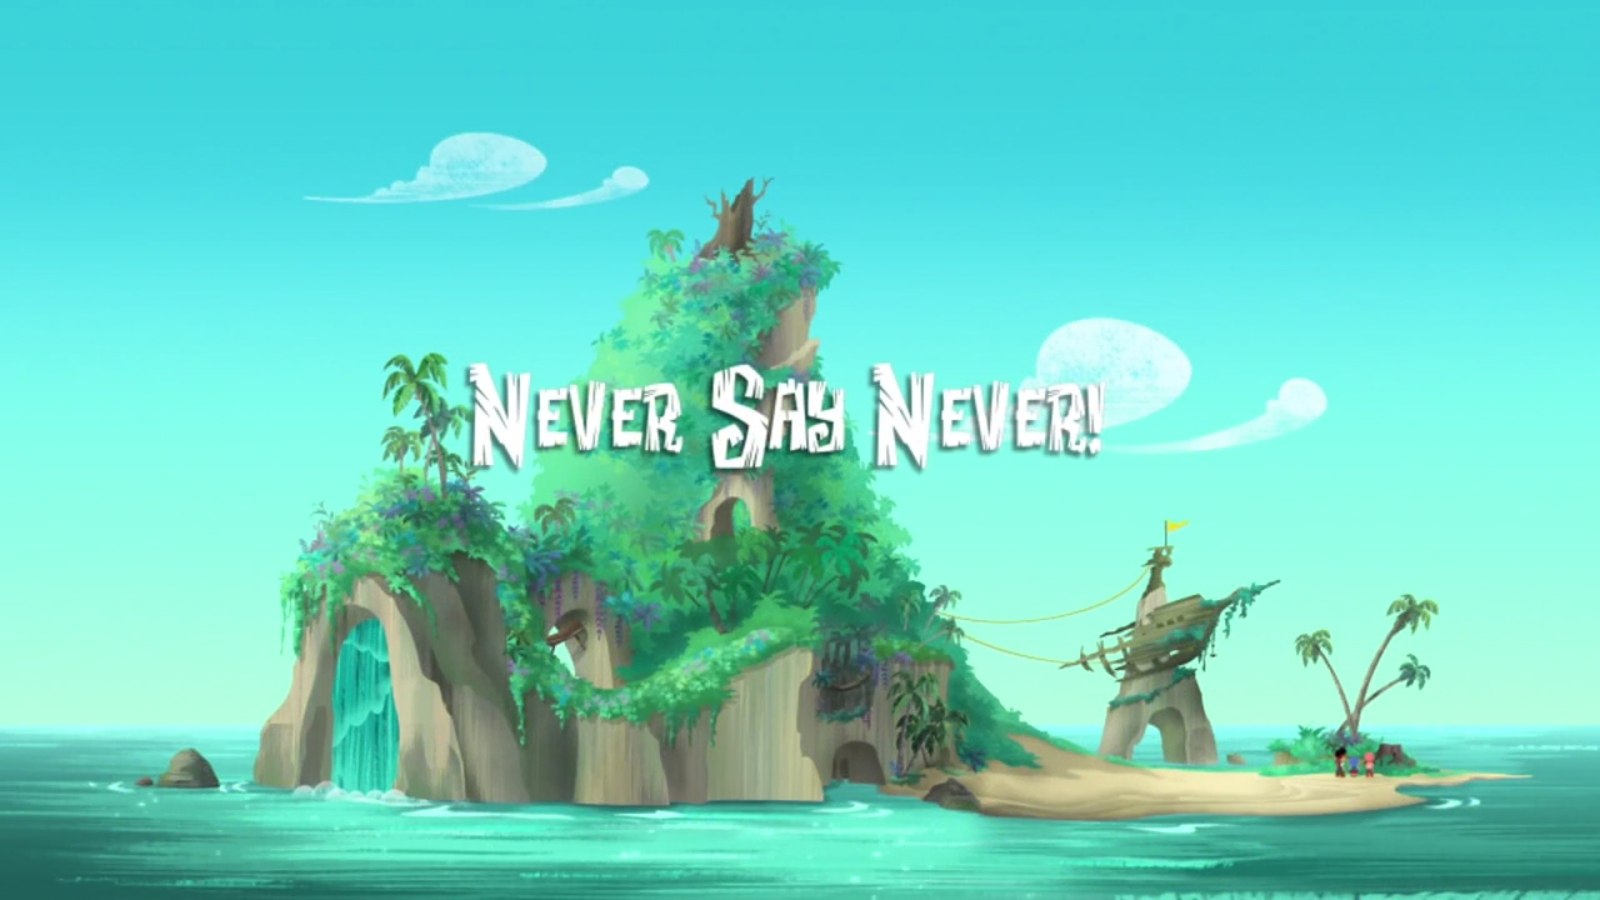 File:Never Say Never!titlecard.png